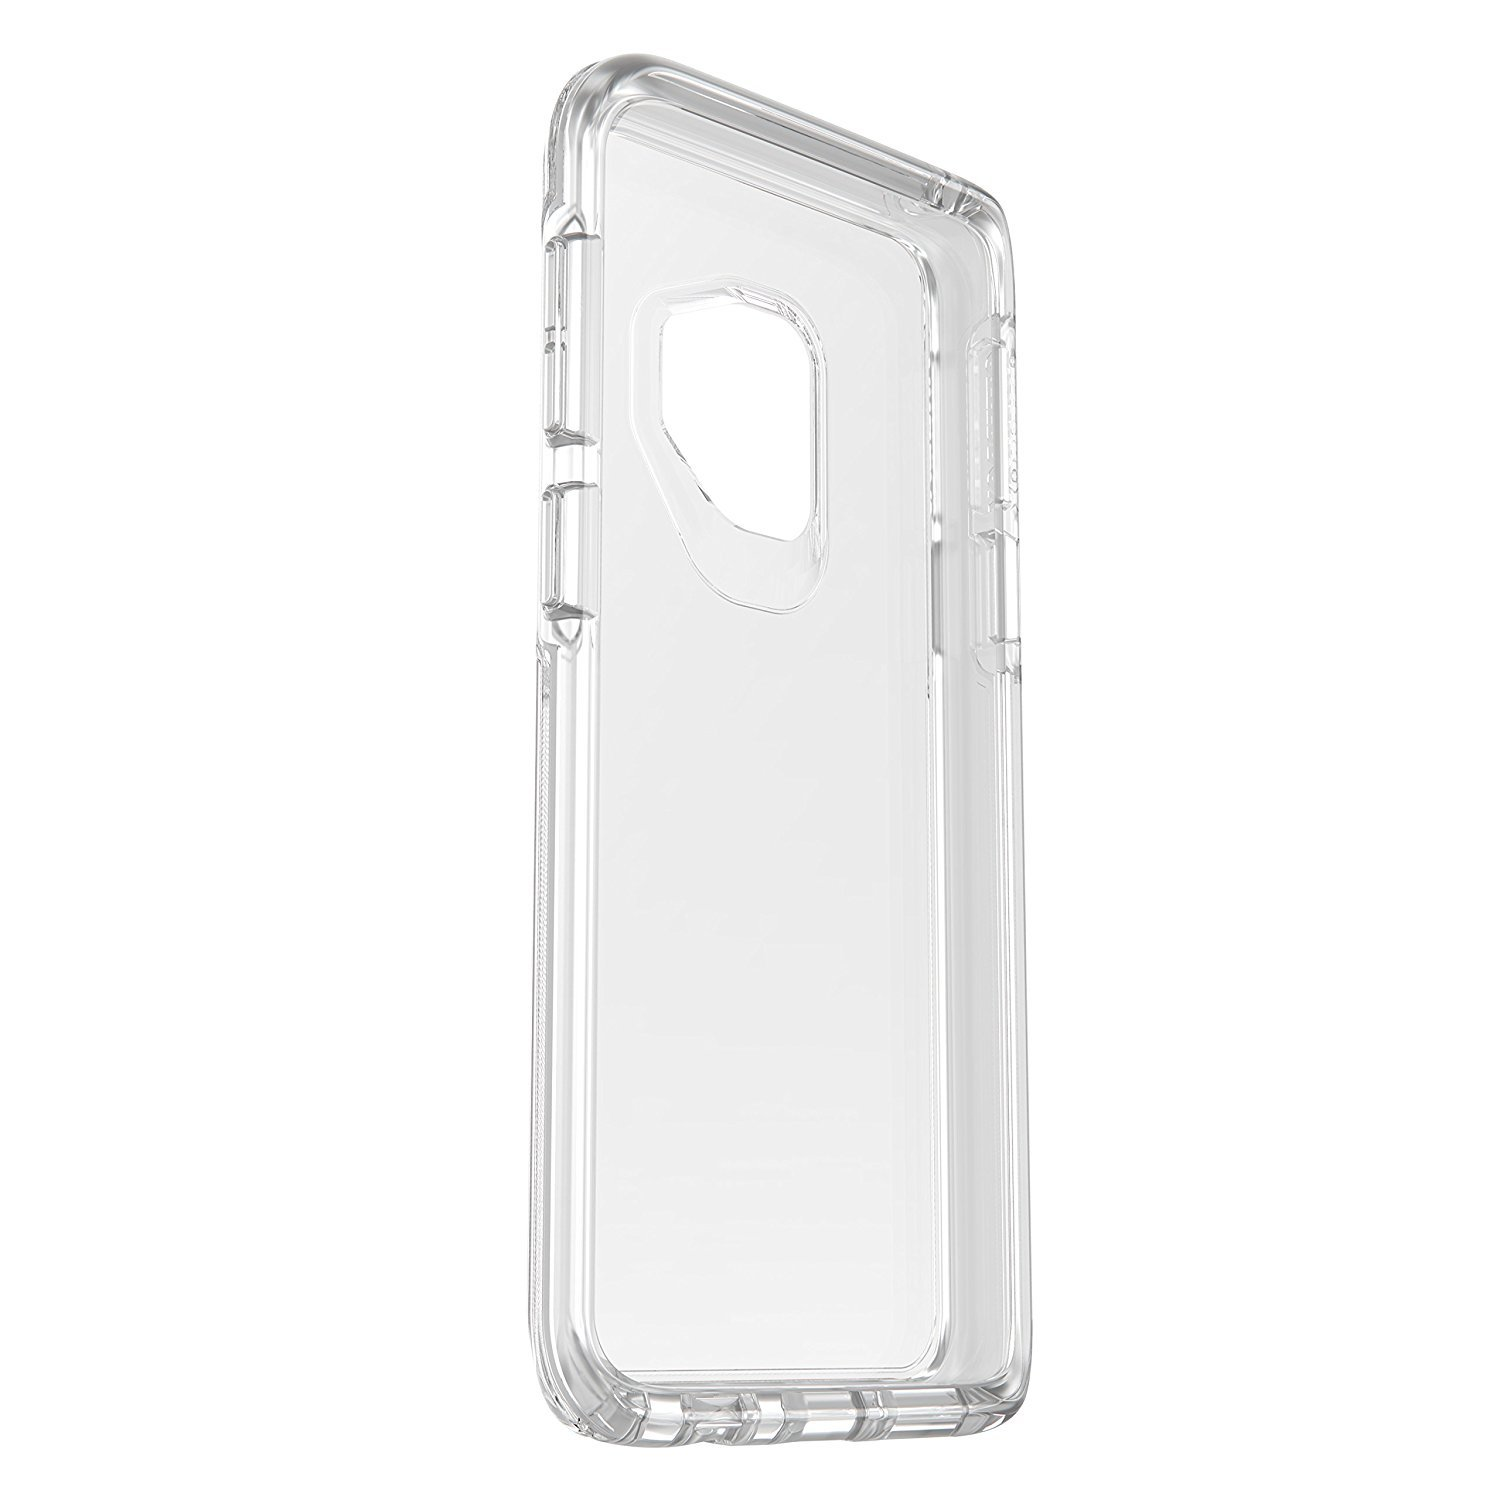 OtterBox Symmetry Clear Samsung Galaxy S9 Case - Clear